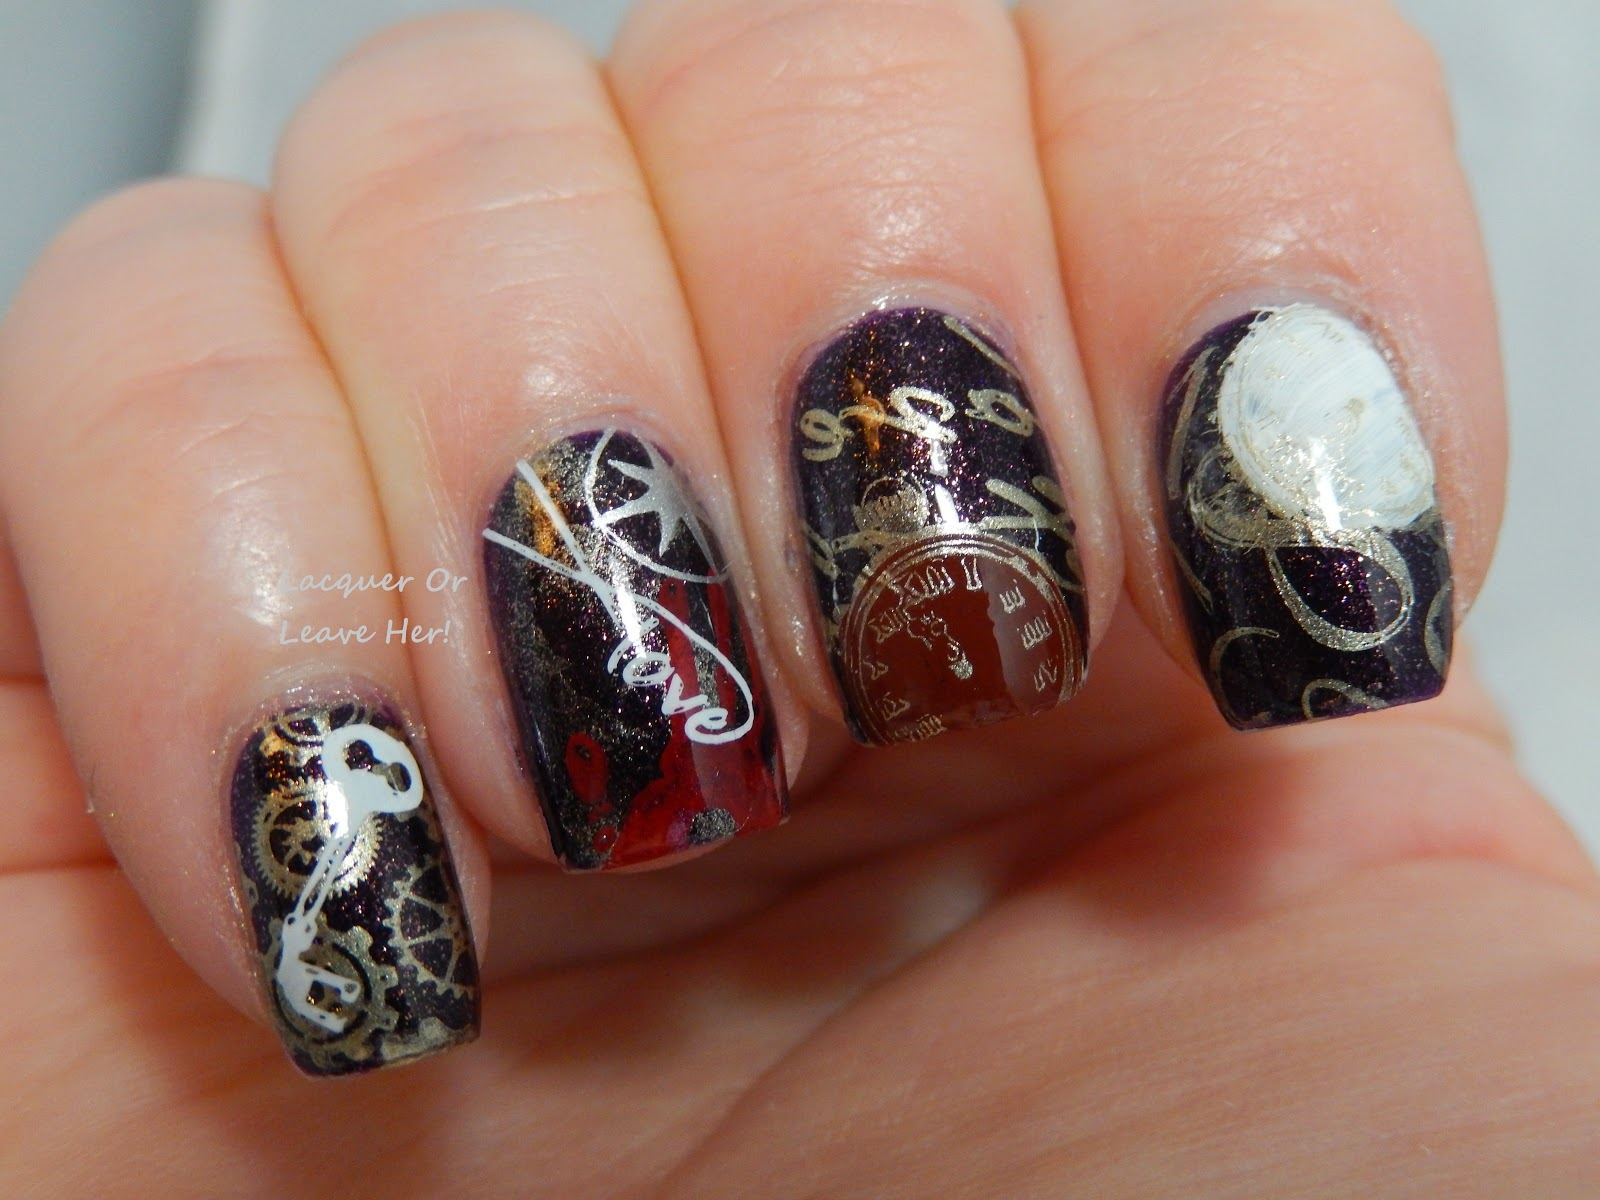 The Time Traveler's Wife manicure